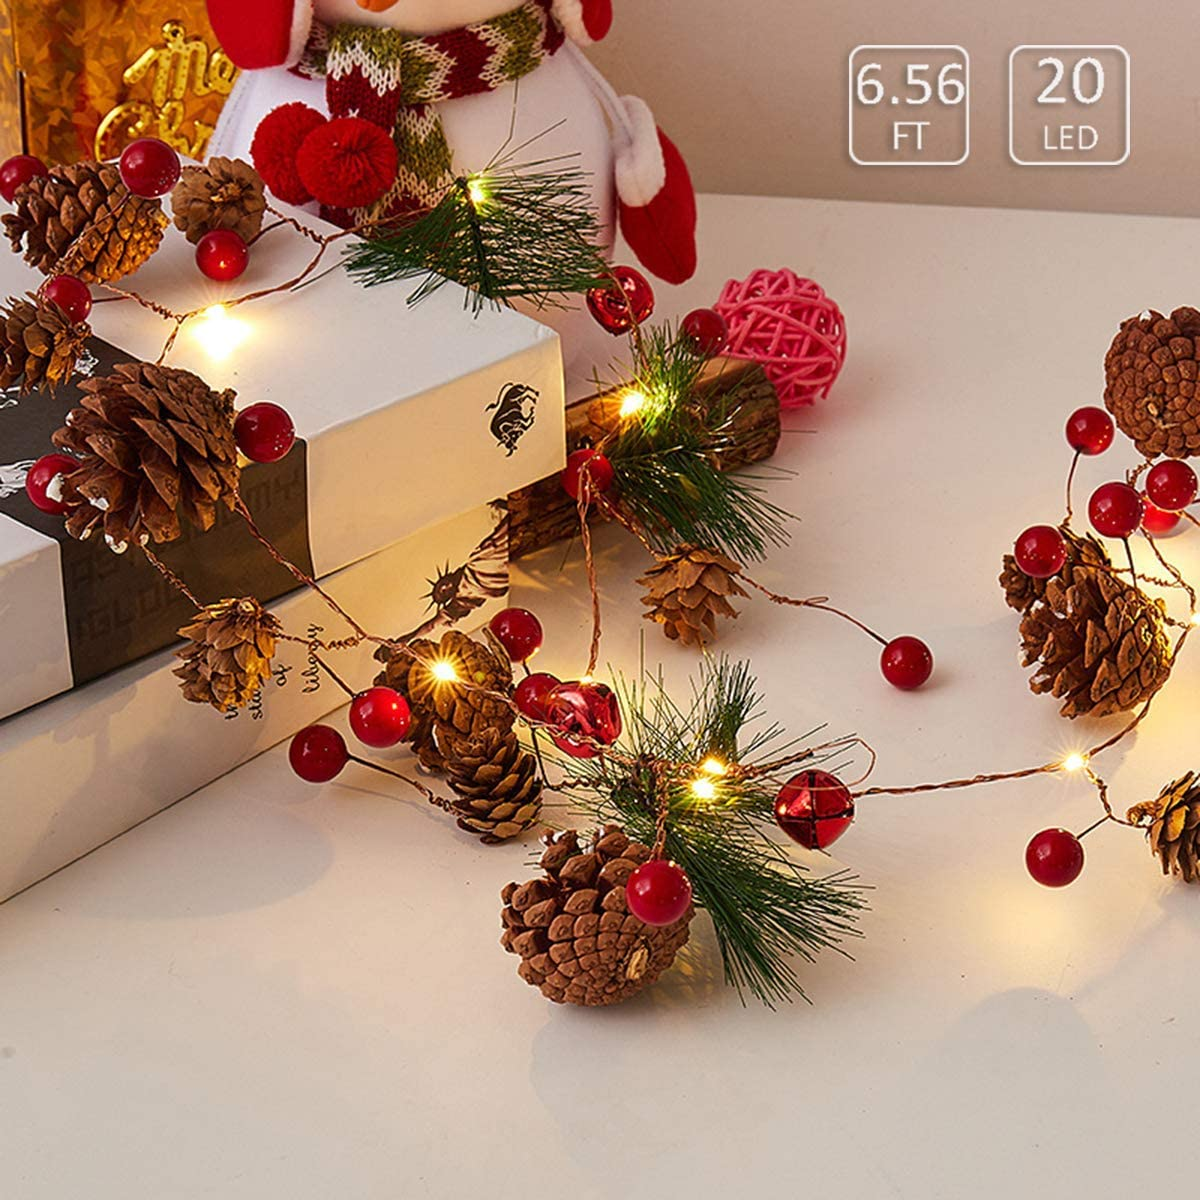 DTDR Christmas Garland with Lights,6.5FT 20 LED Red Berry with Pine Cone Garland Lights Battery Operated Fall Decor Garland,Led Garland String Lights for Indoor Outdoor Thanksgiving Decor Christmas